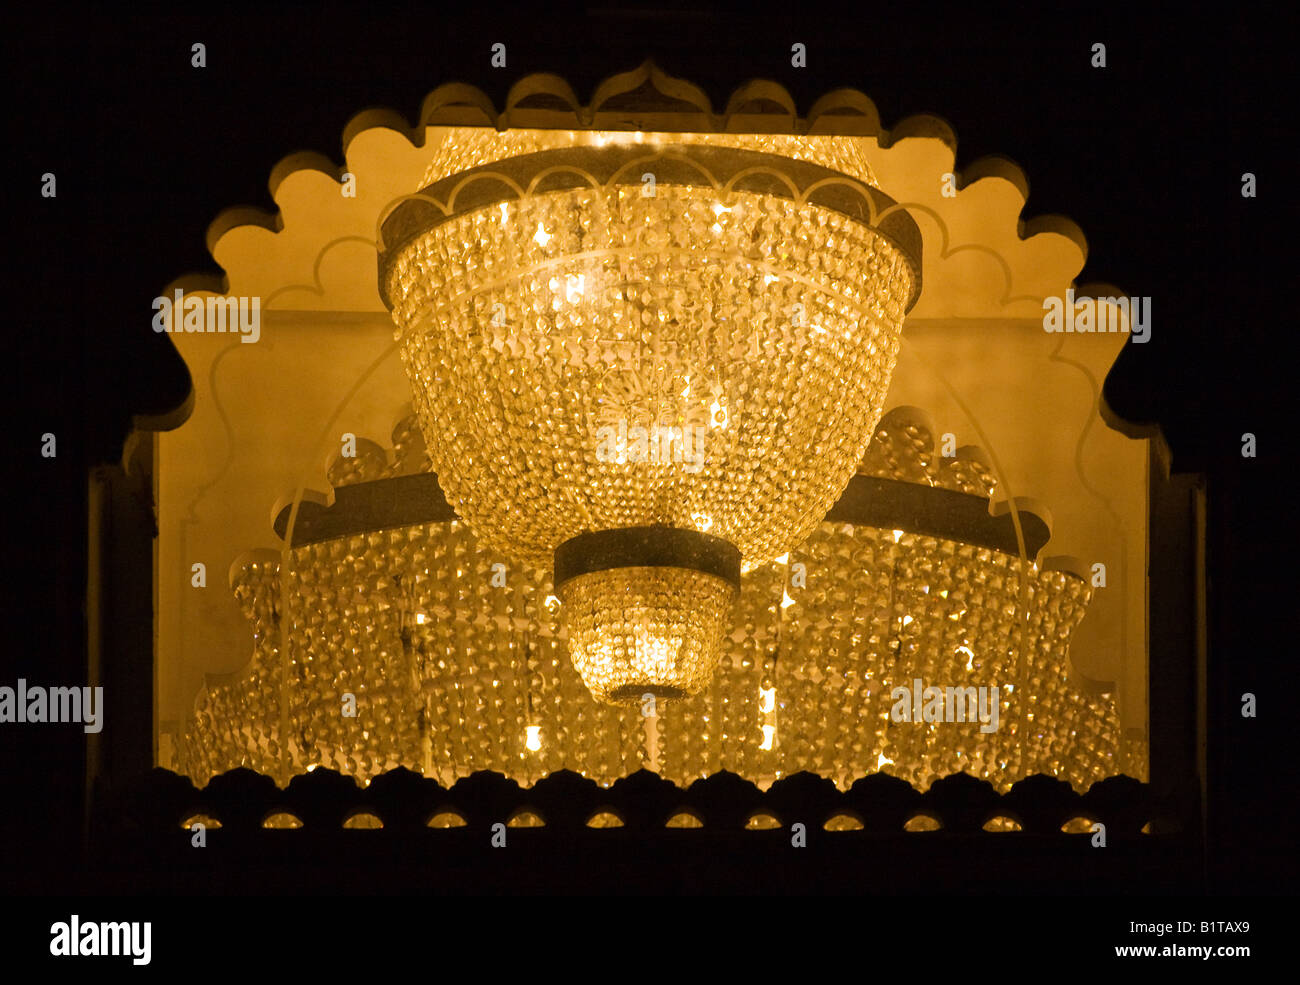 The crystal ballroom chandelier in the city palace of udaipur built the crystal ballroom chandelier in the city palace of udaipur built by maharaja udai singh ll in 1600 ad rajasthan india arubaitofo Gallery